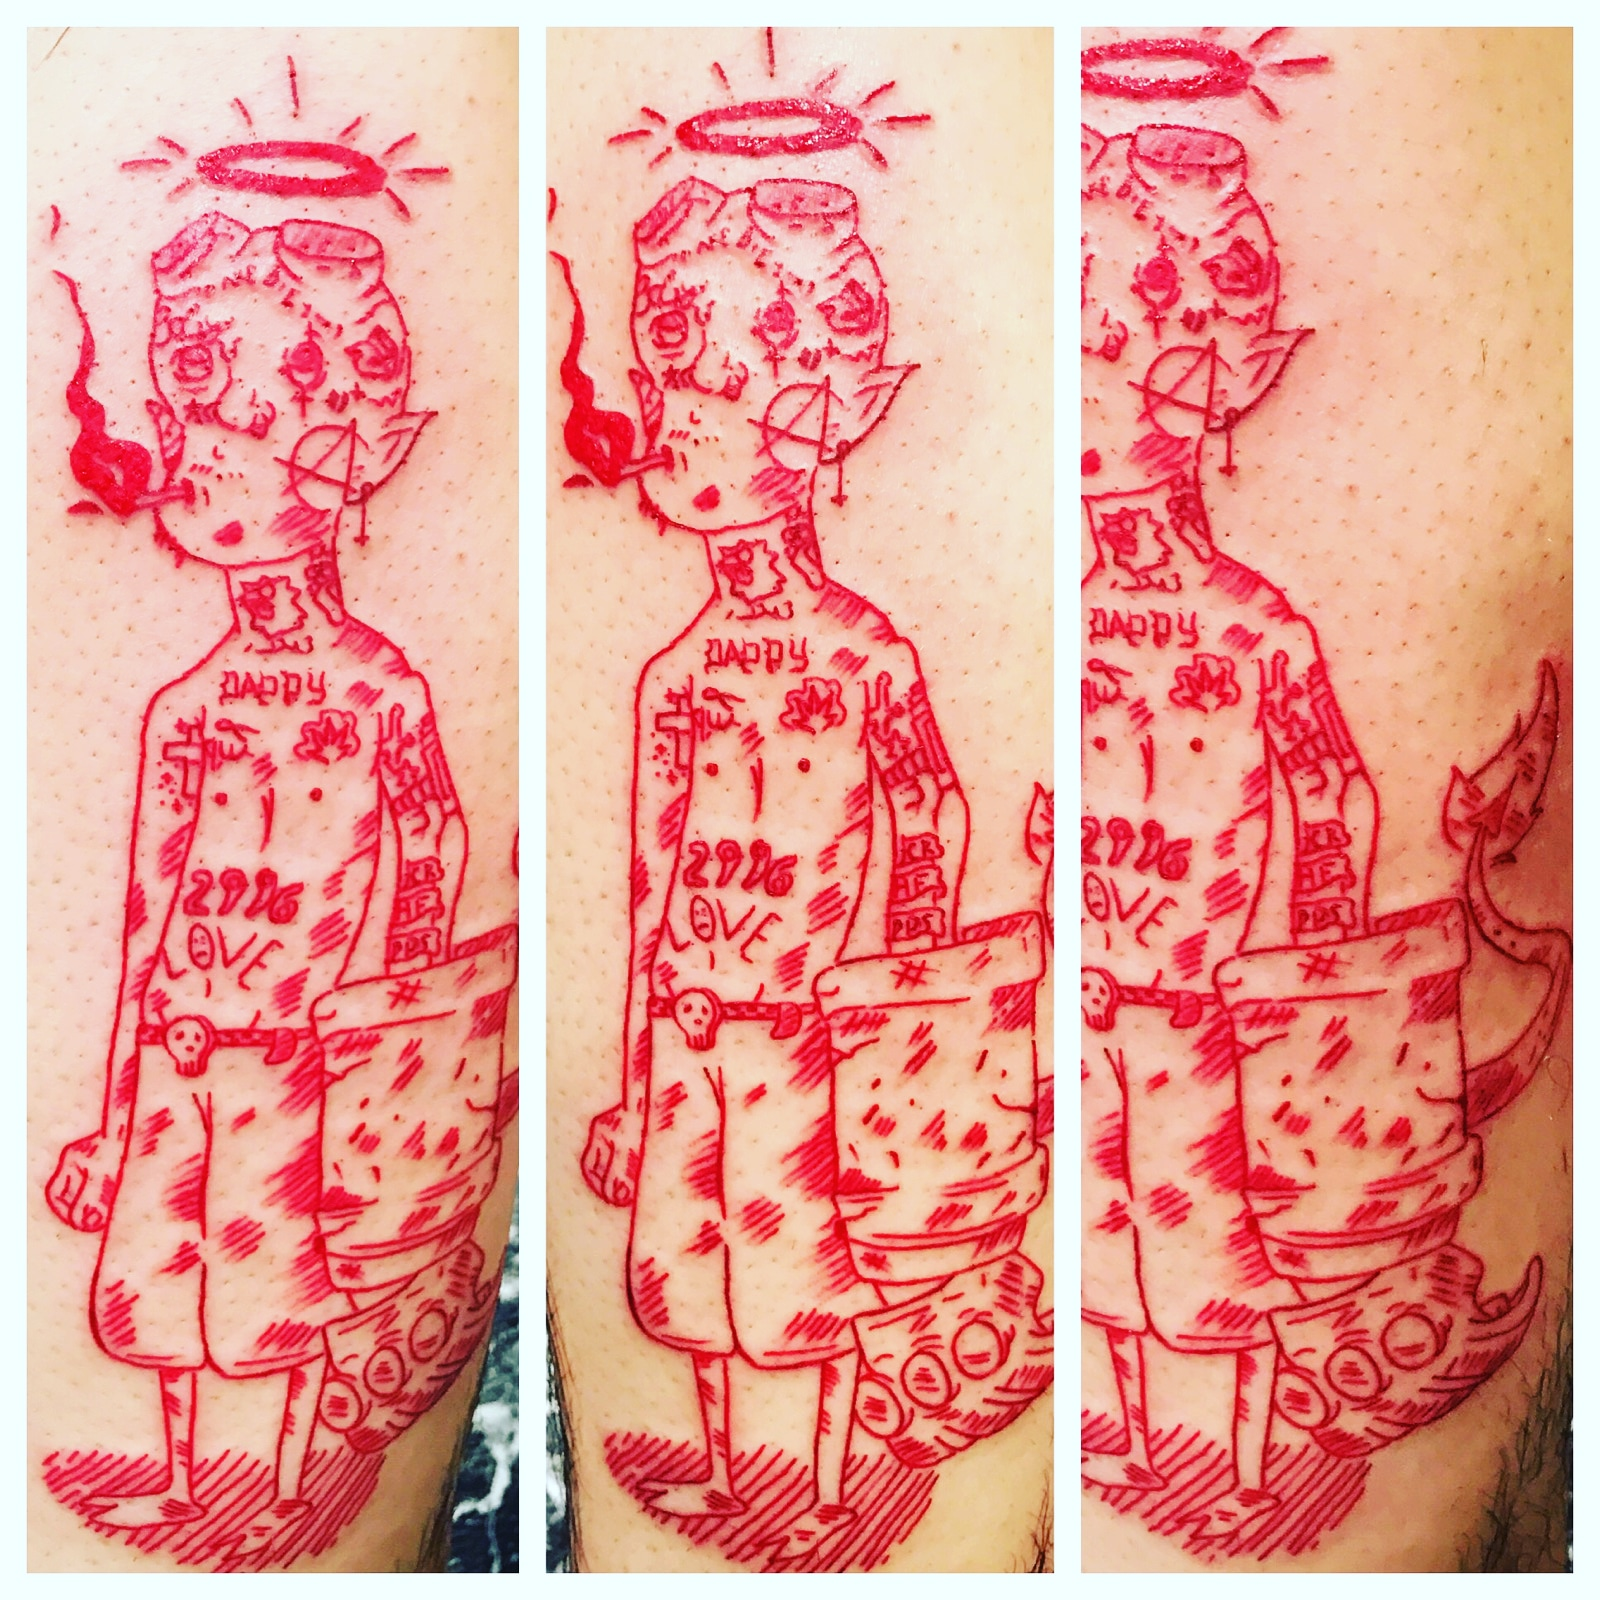 Lil Peeps Tattoo by The Red Parlour Tatt